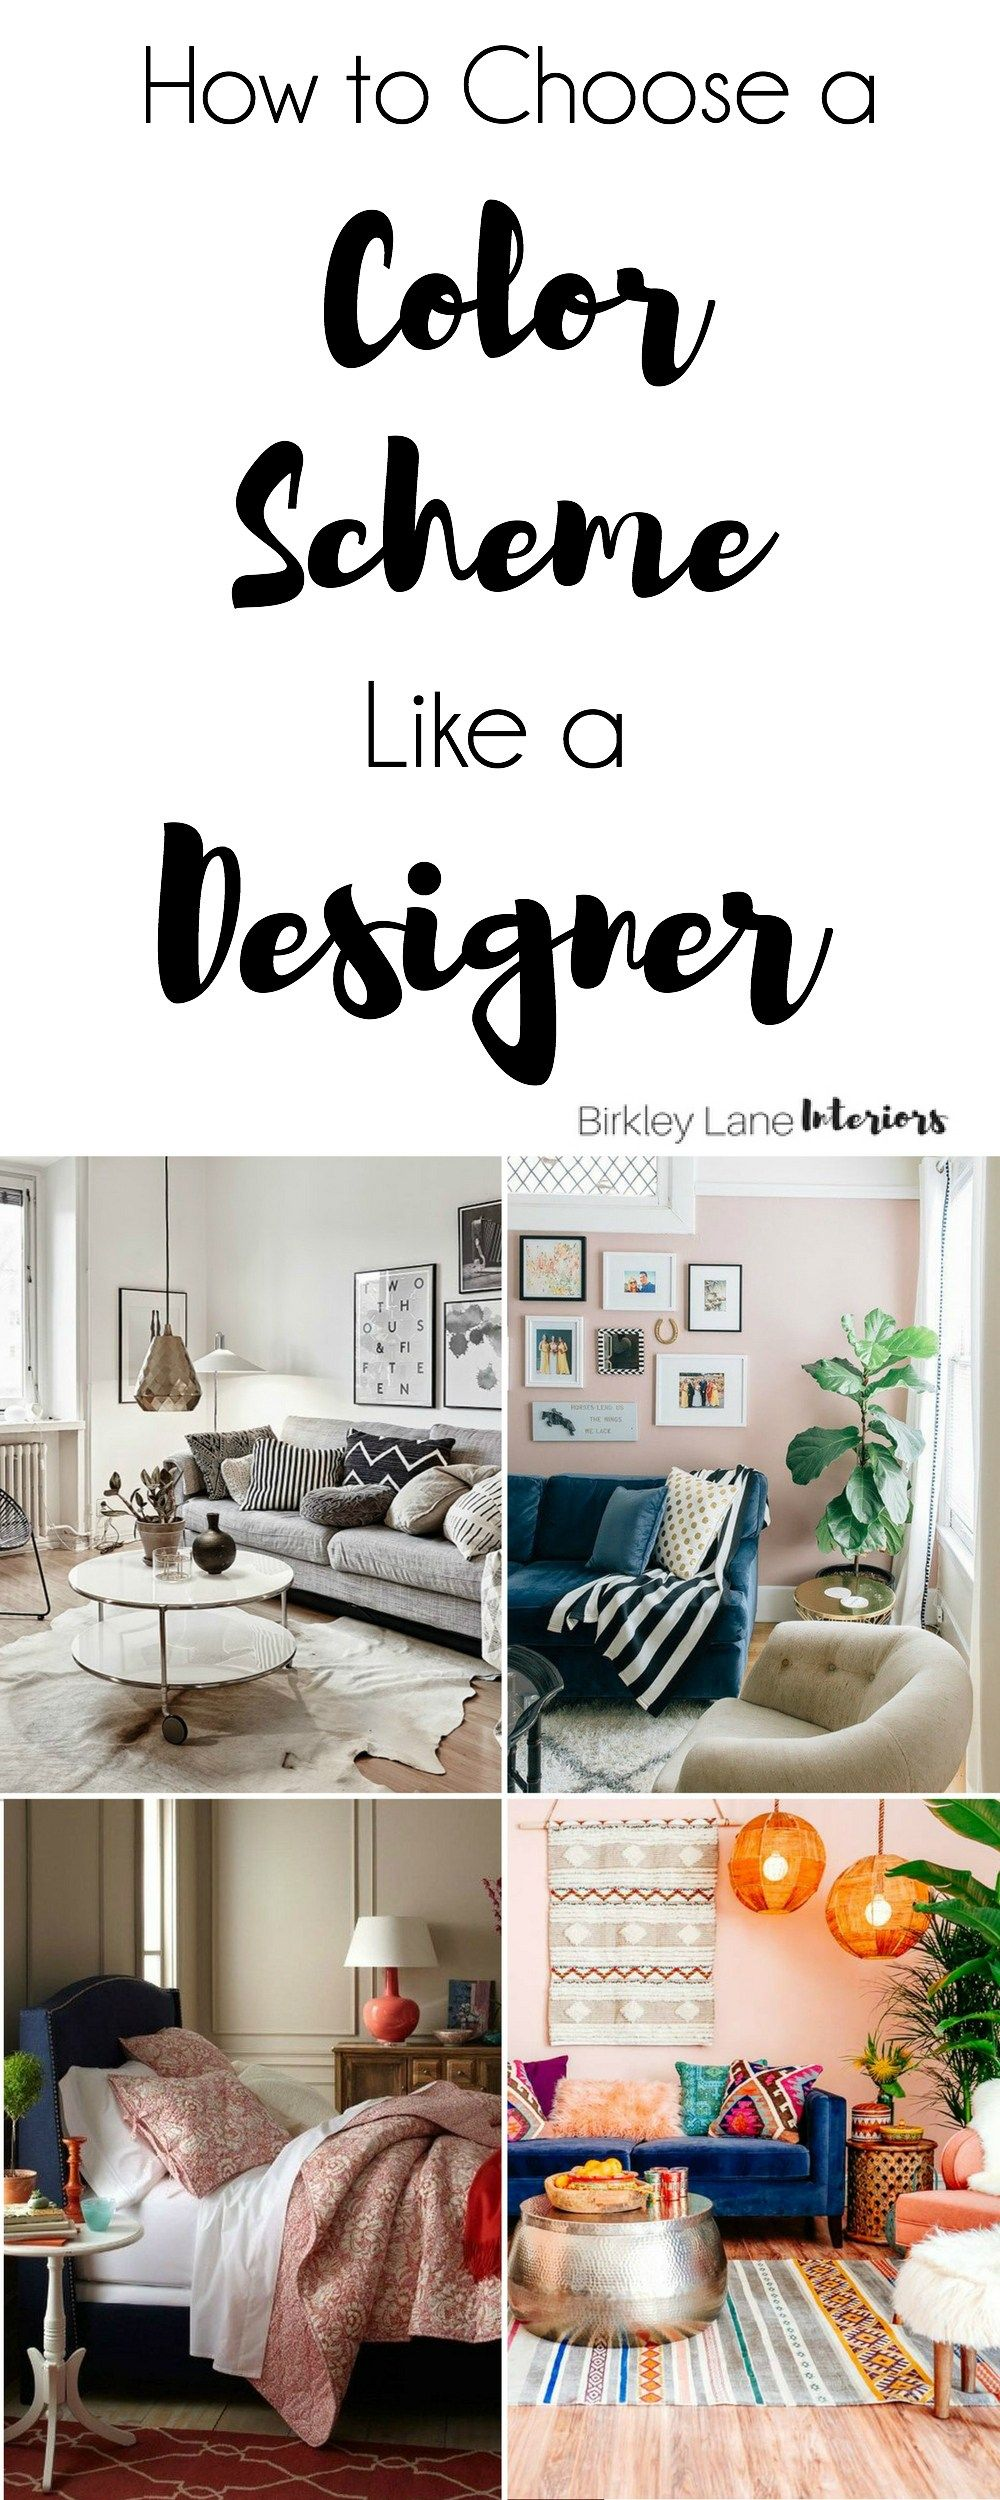 How To Choose a Color Scheme Like a Designer | Learning, Designers ...